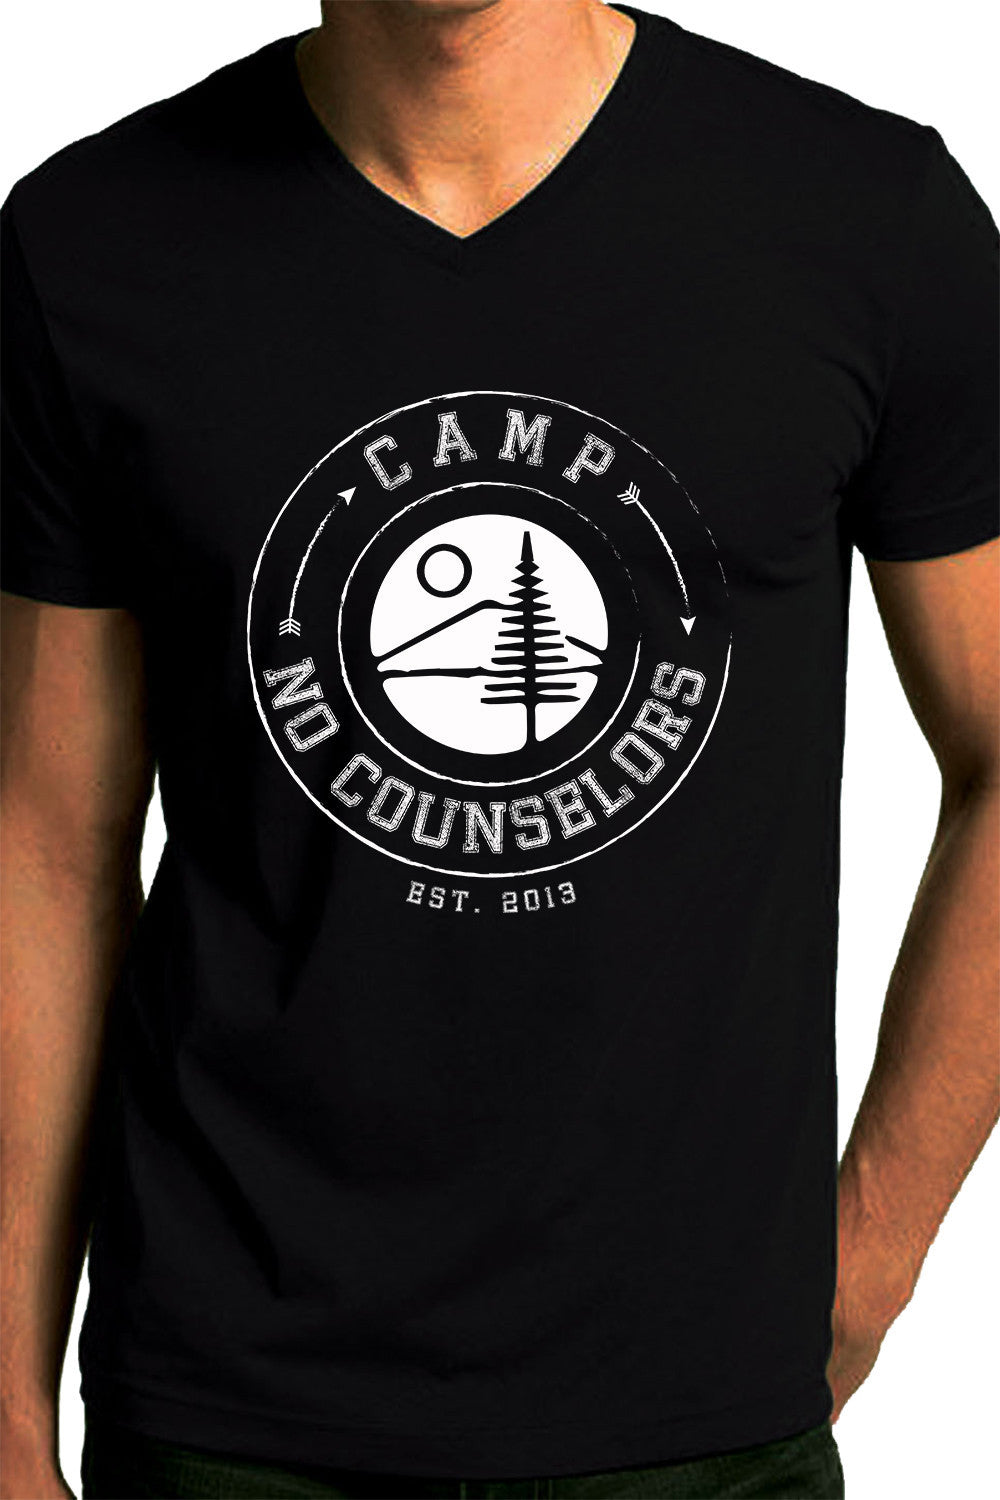 2016 Vintage Camp T-Shirt (multiple colors, unisex)